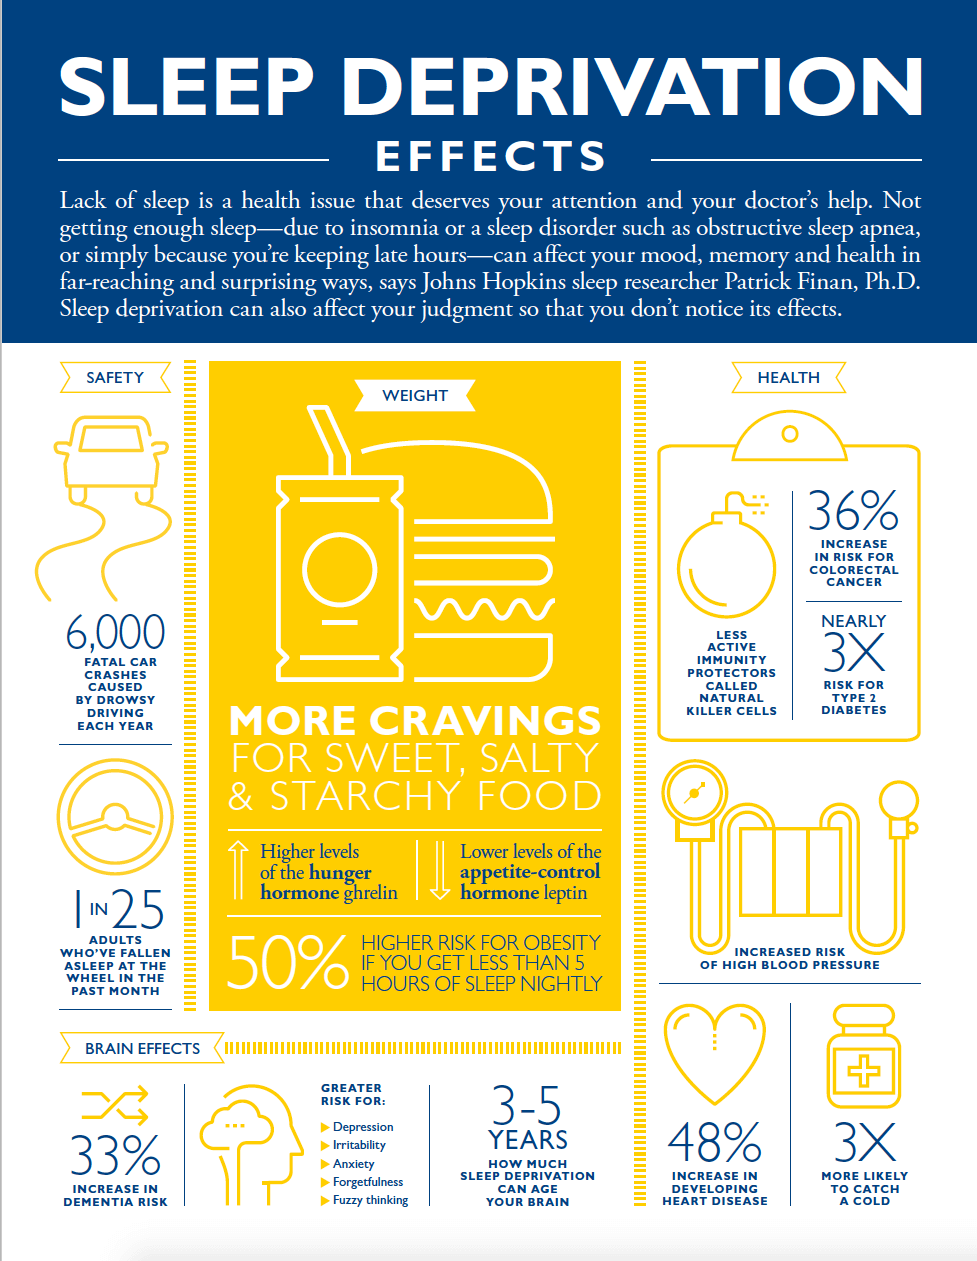 A blue and yellow infographic with images and text related to sleep deprevation